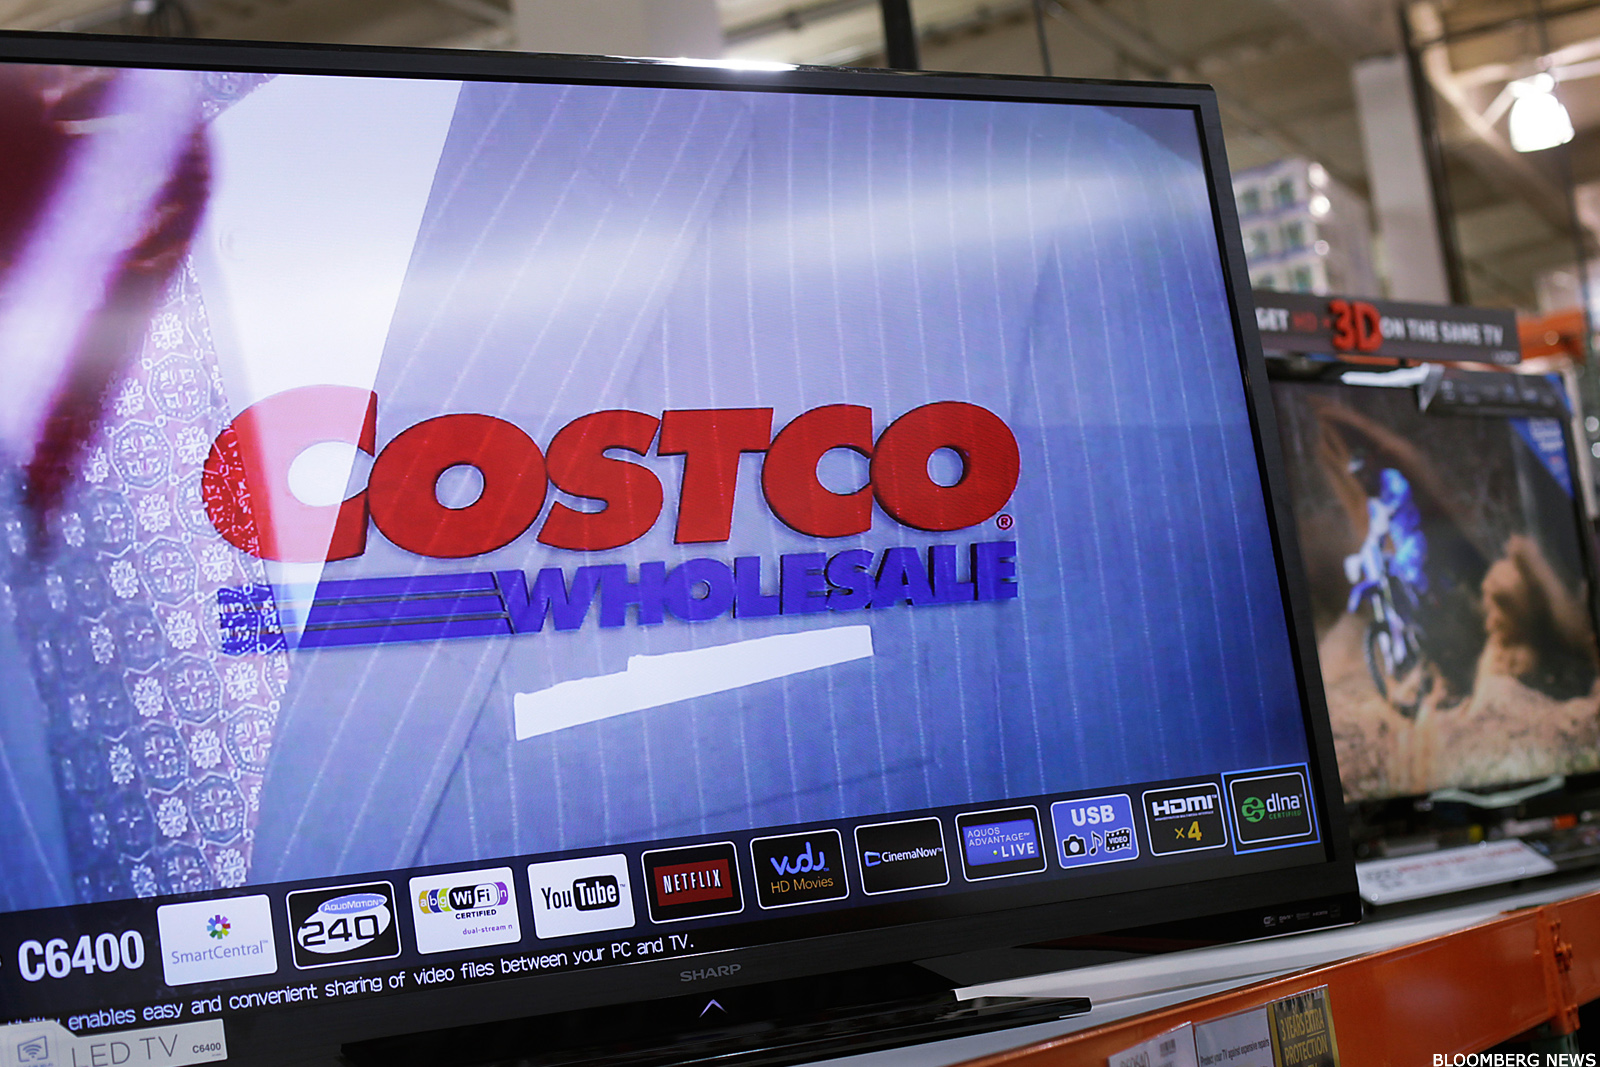 costco cost stock gains as q4 earnings top estimates